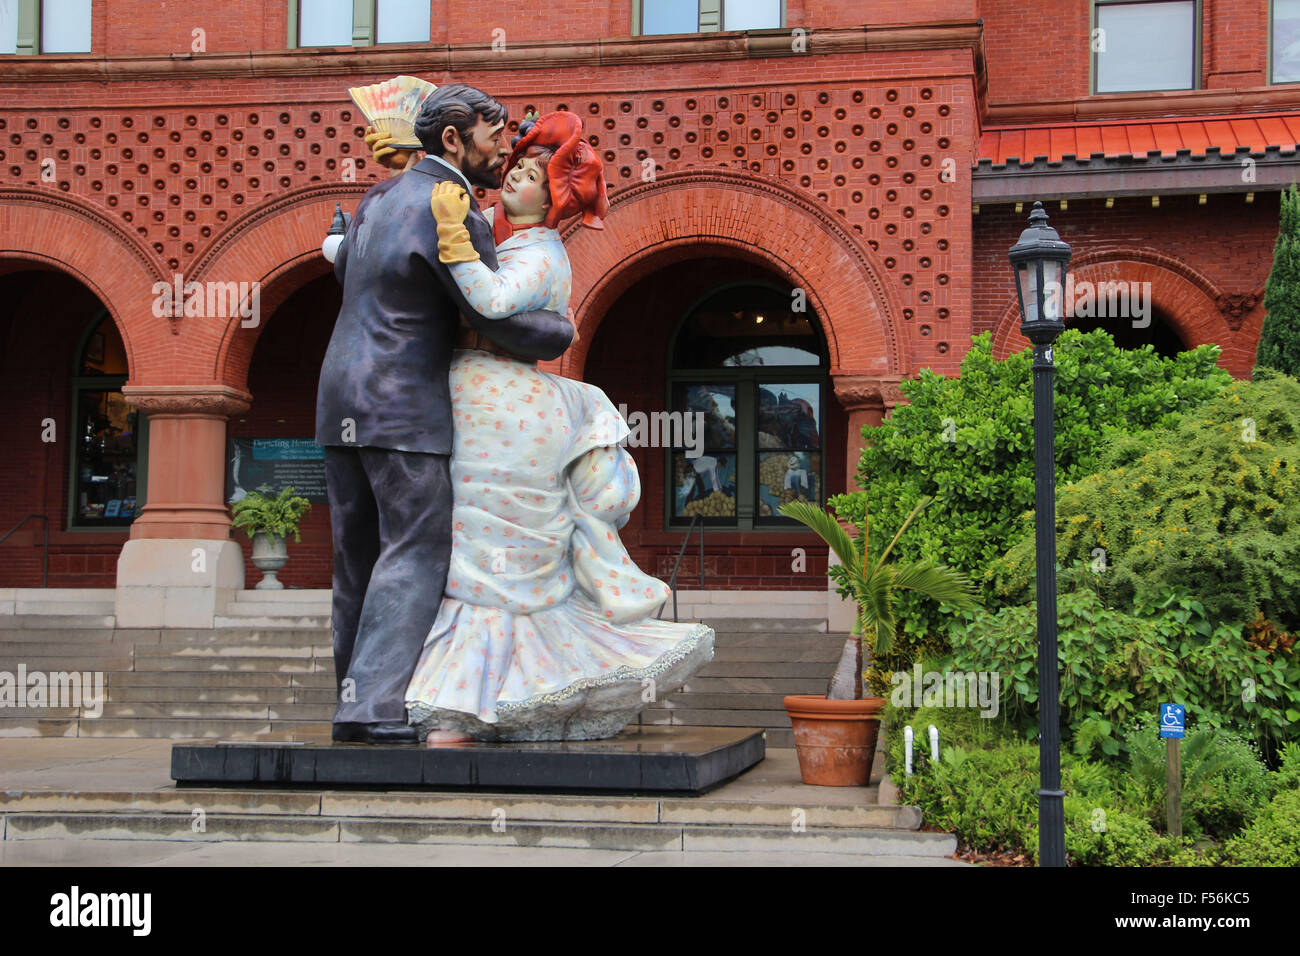 gigantic dancing couple, ballroom dancers statute in key west art and history museum or old post office and custom - Stock Image